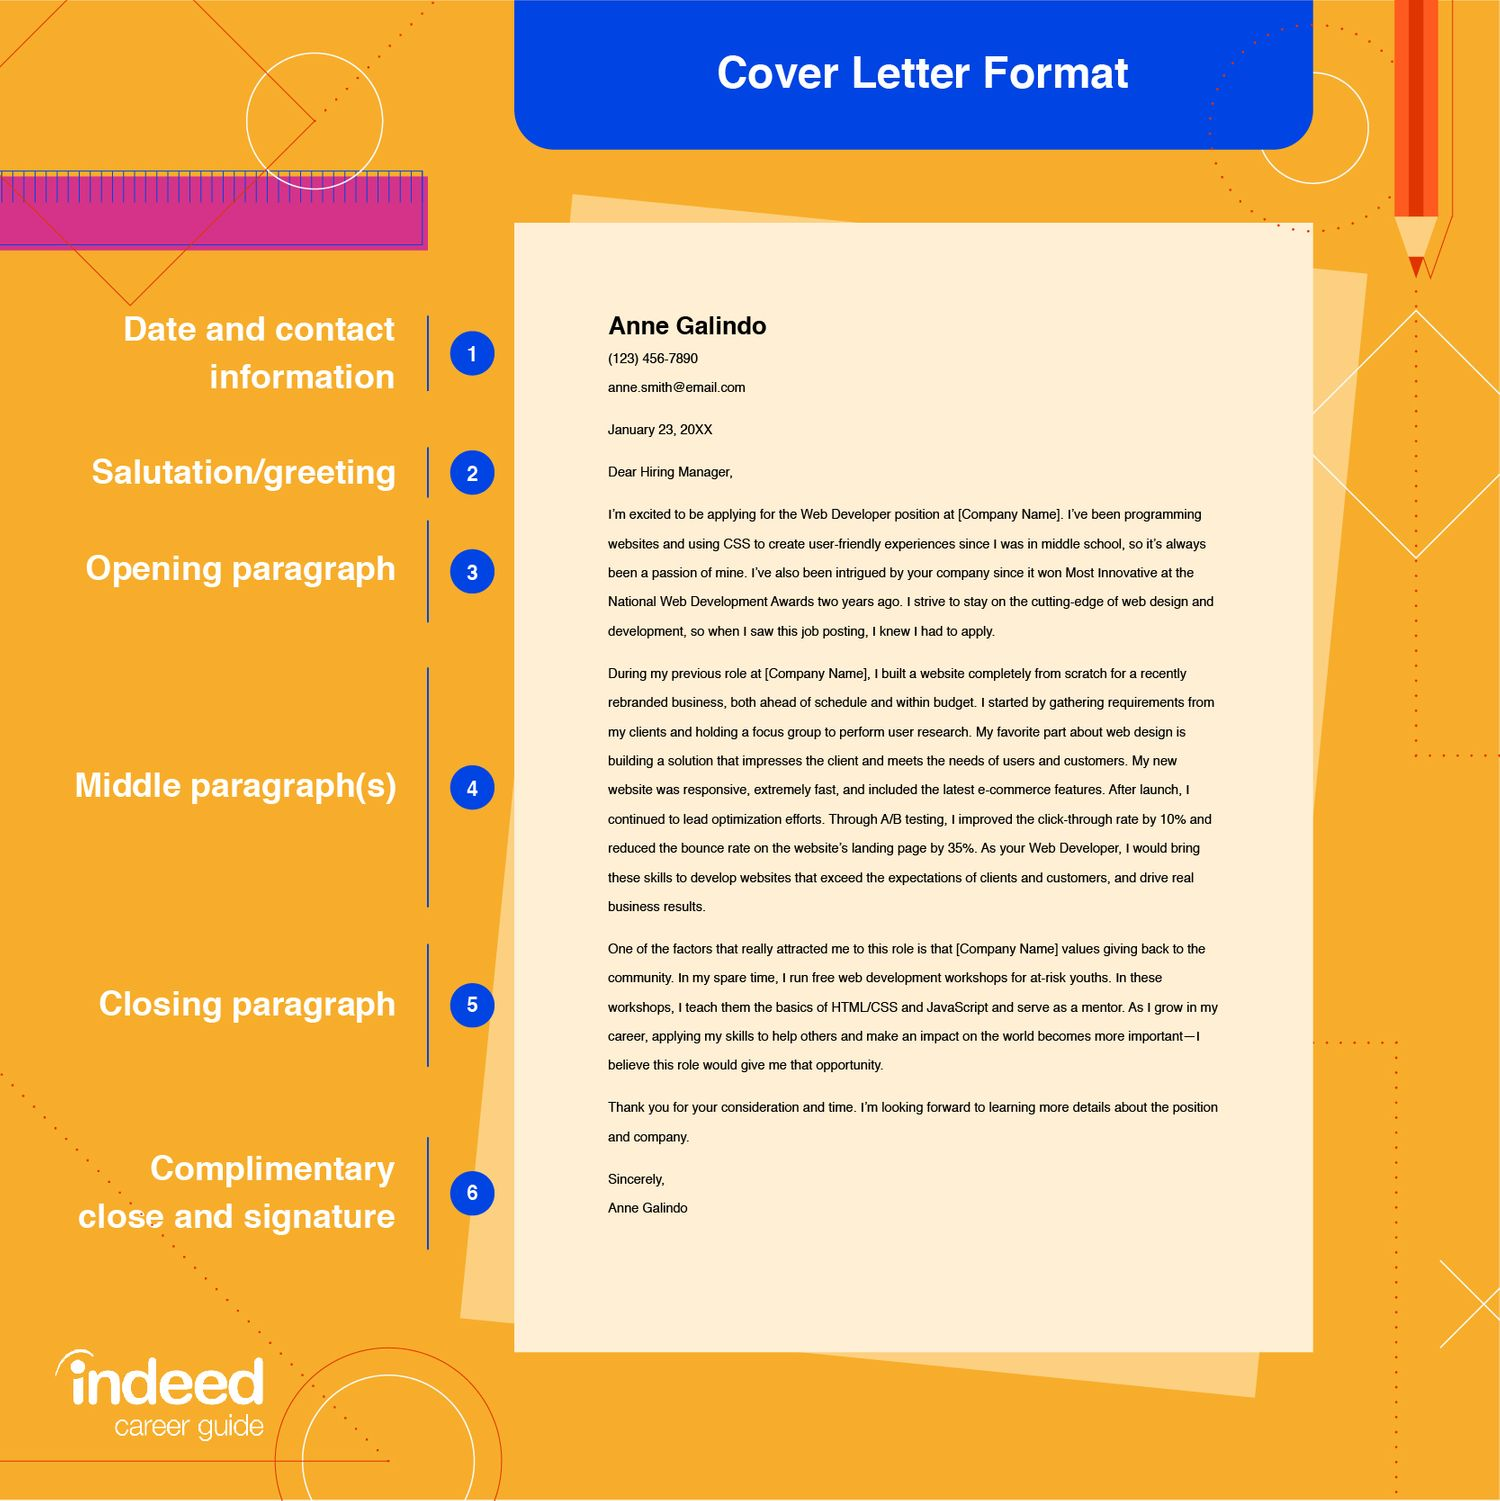 Font To Use For Cover Letter from d4y70tum9c2ak.cloudfront.net